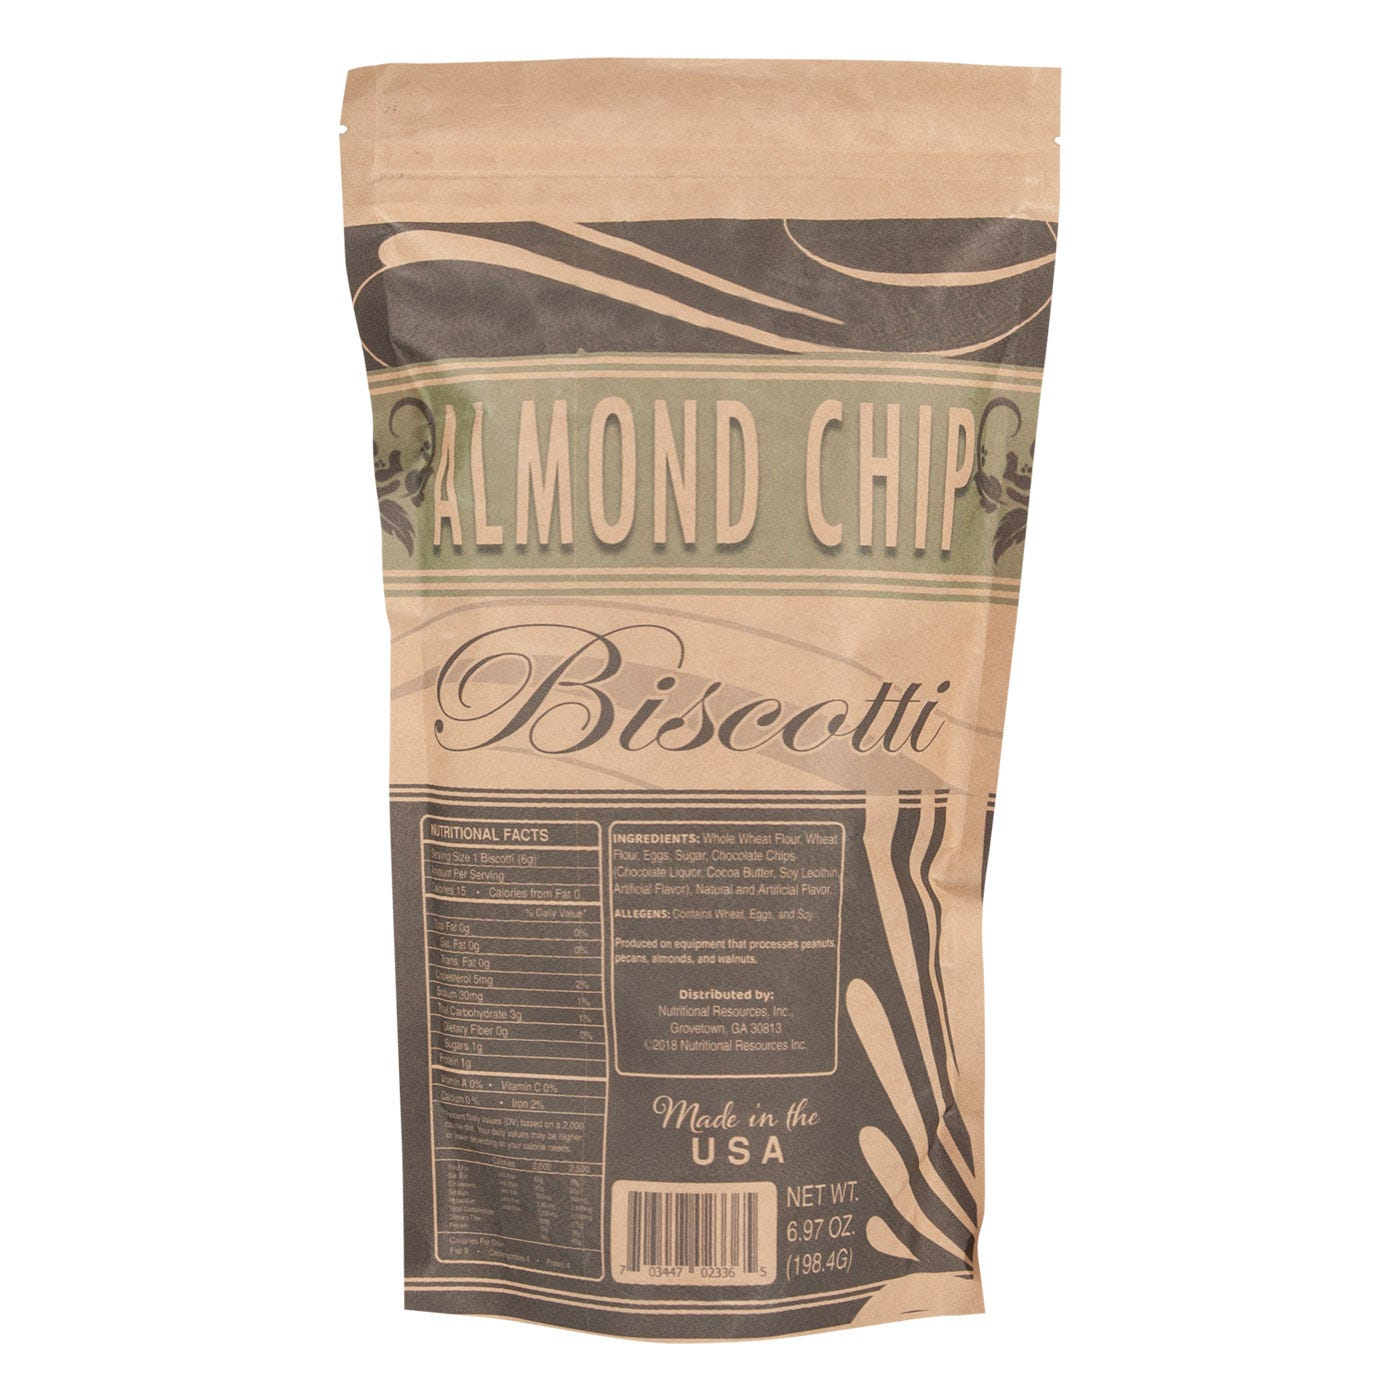 Fat-Free Biscotti Almond Chip 7 Oz Bag - BariWise